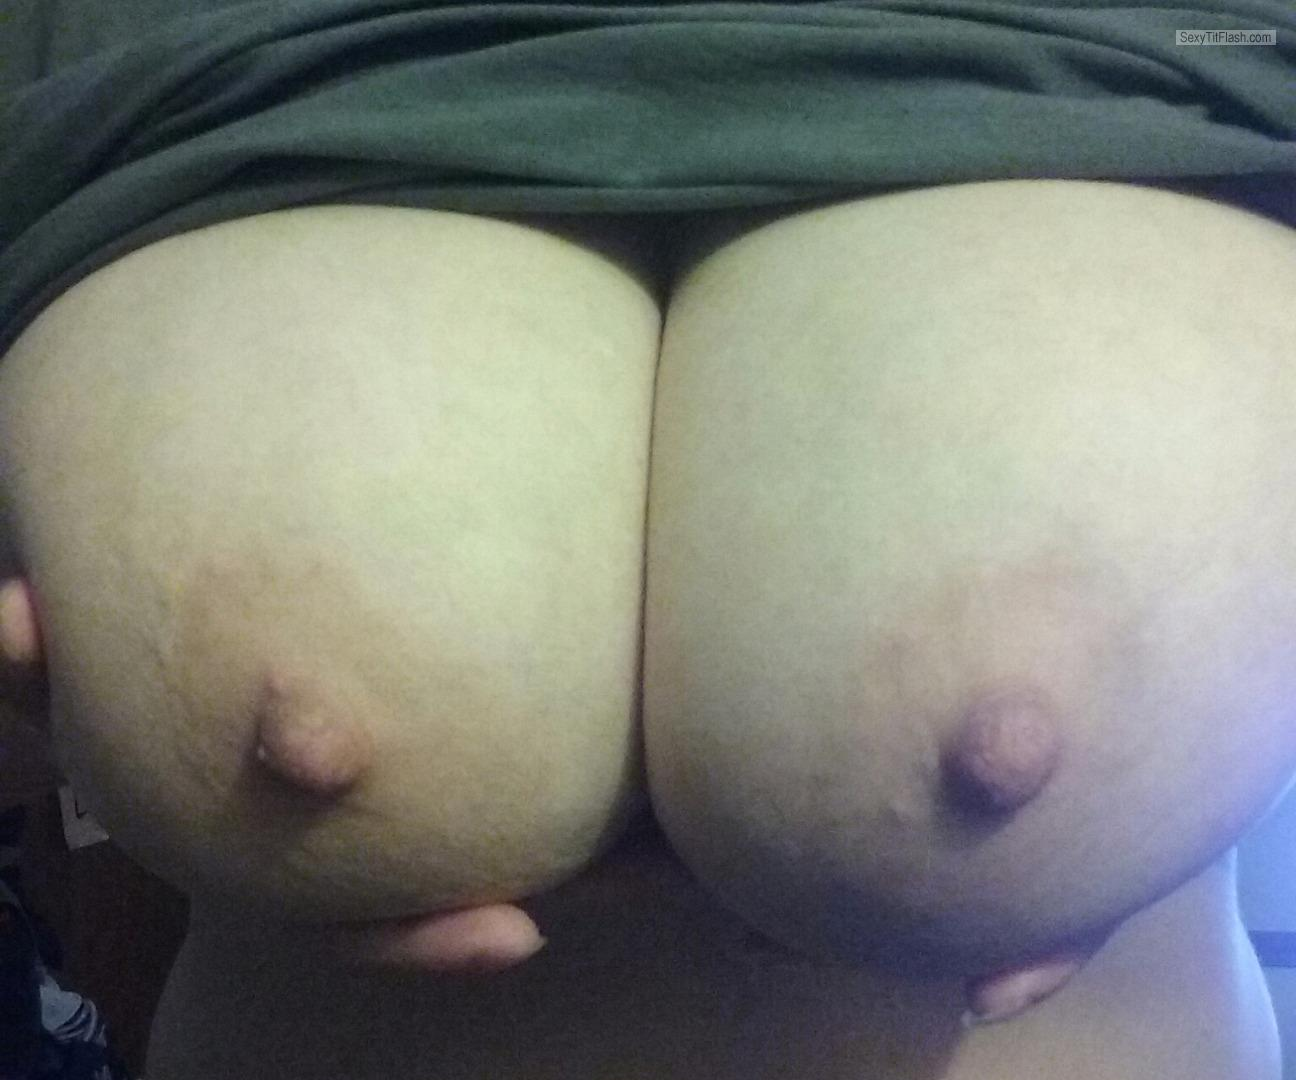 Very big Tits Of My Wife Juggs